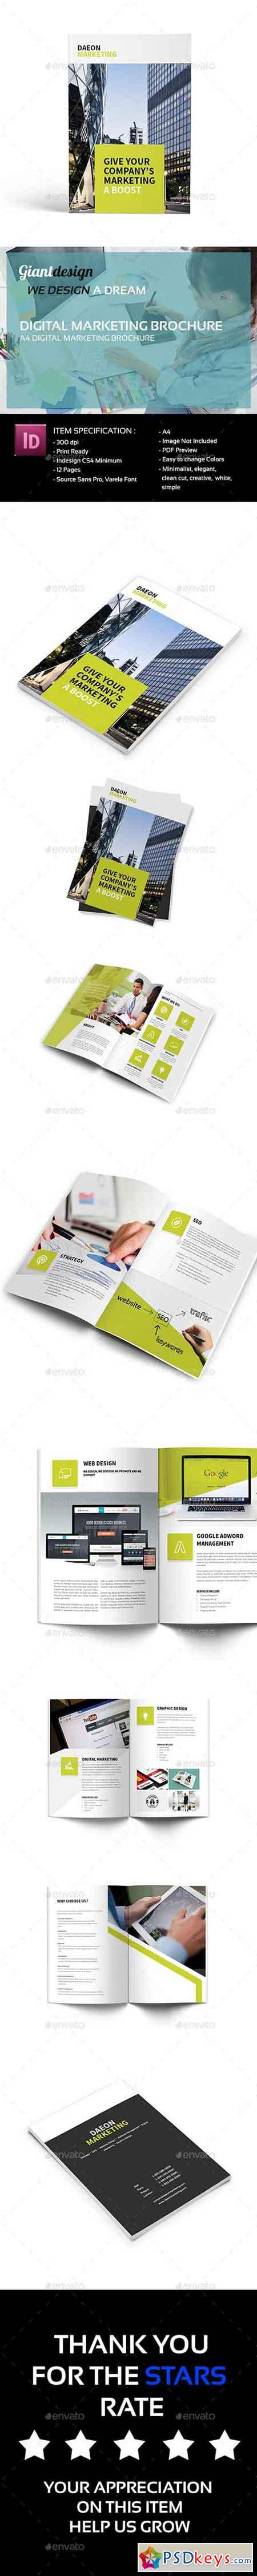 Digital Marketing Brochure 20281969